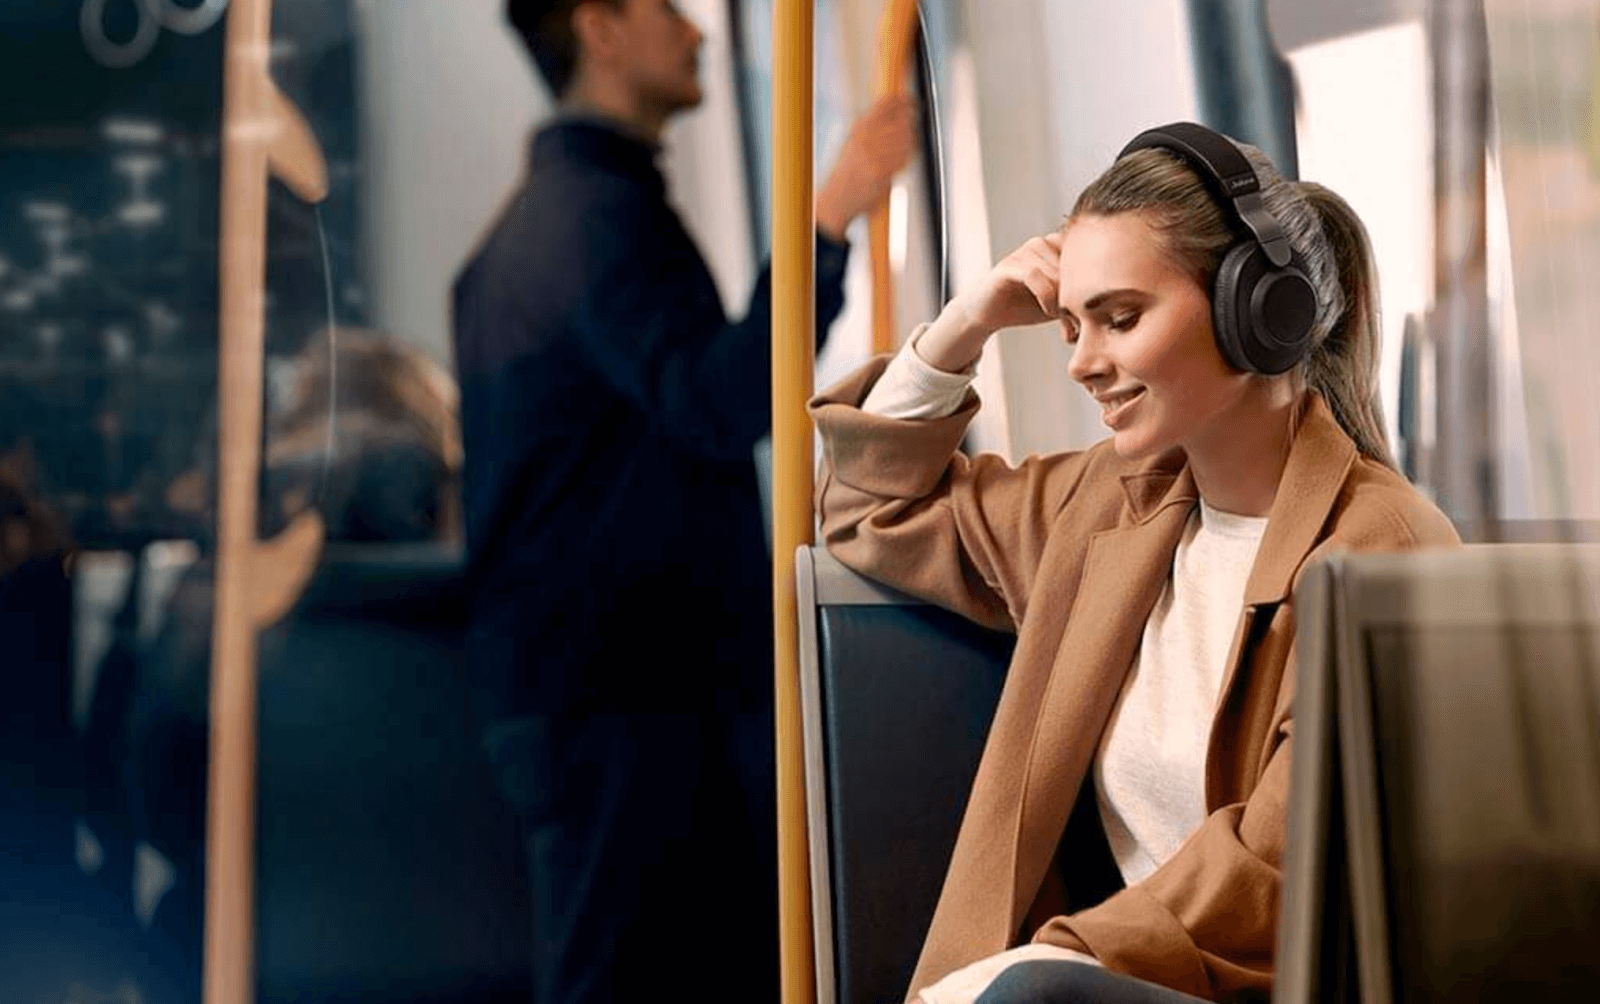 jabra headphones on a woman